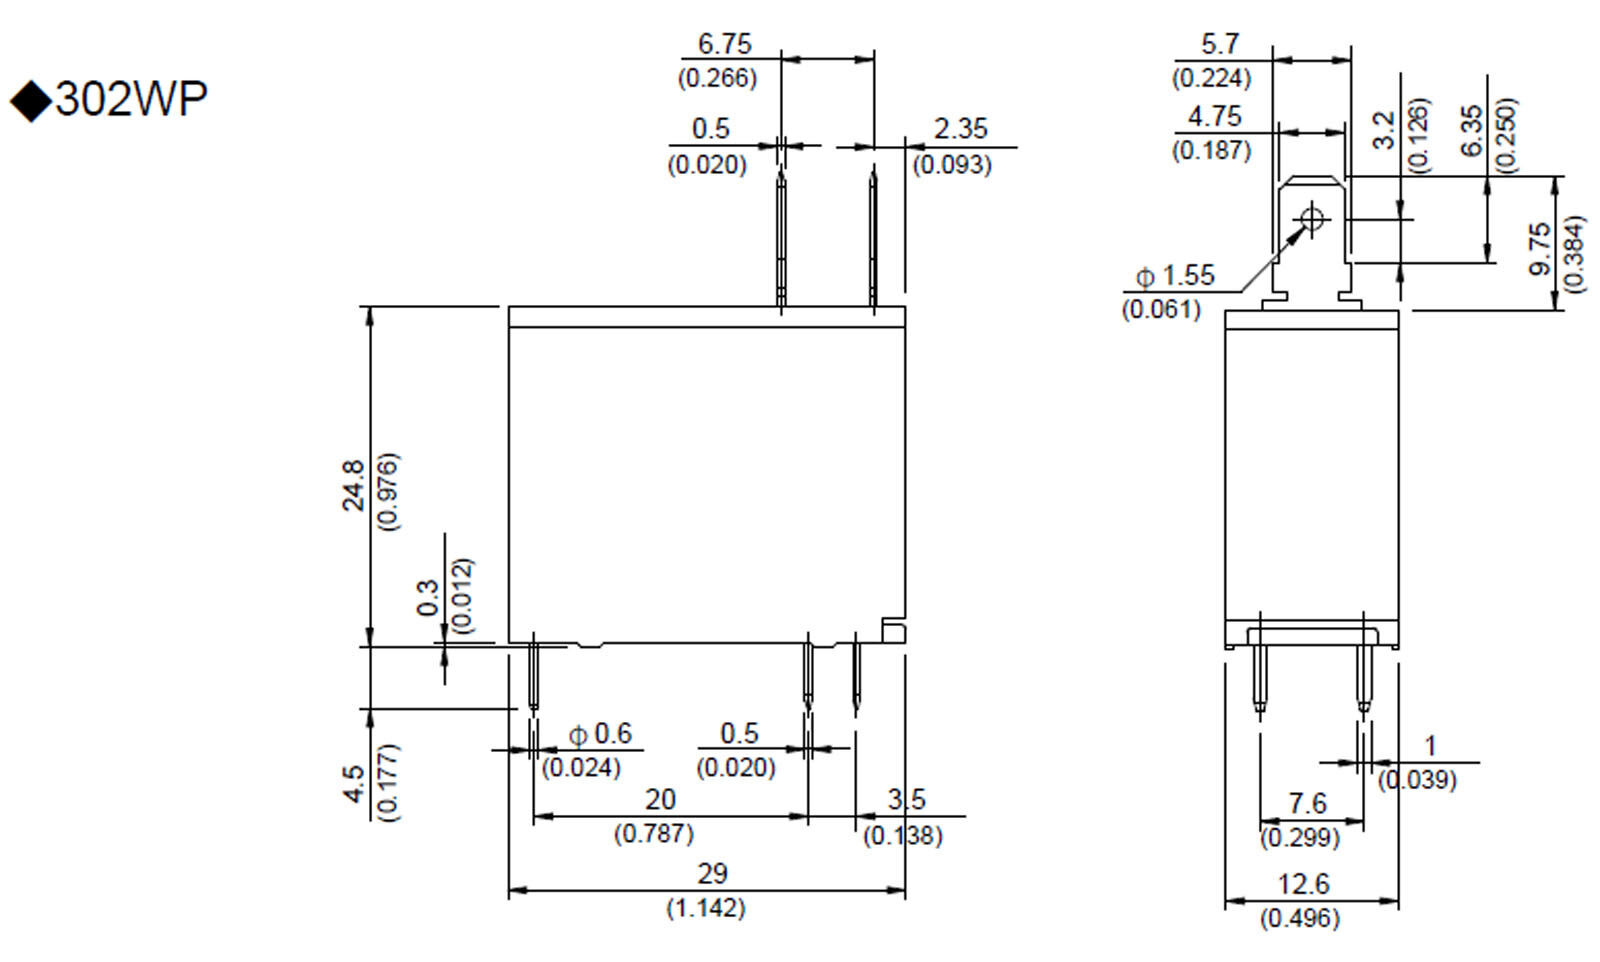 Idec Relay Wiring Diagram Free Picture Schematic | Wiring ... on